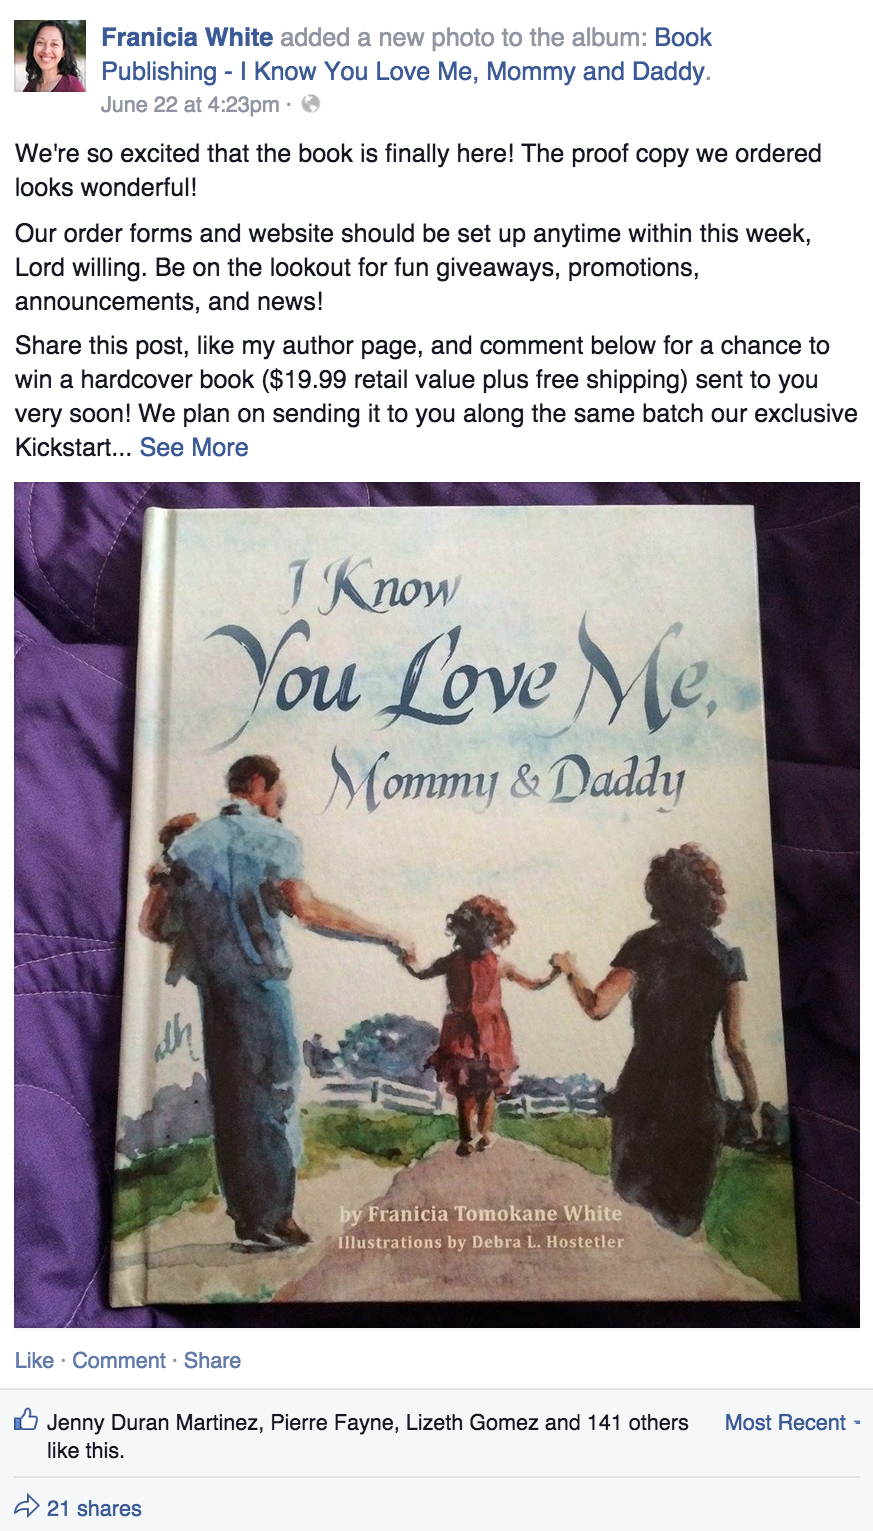 Facebook free book giveaway for I Know You Love Me Mommy and Daddy Christian children's book by Franicia Tomokane White illustrated by Debra L. Hostetler watercolor illustrations on author page